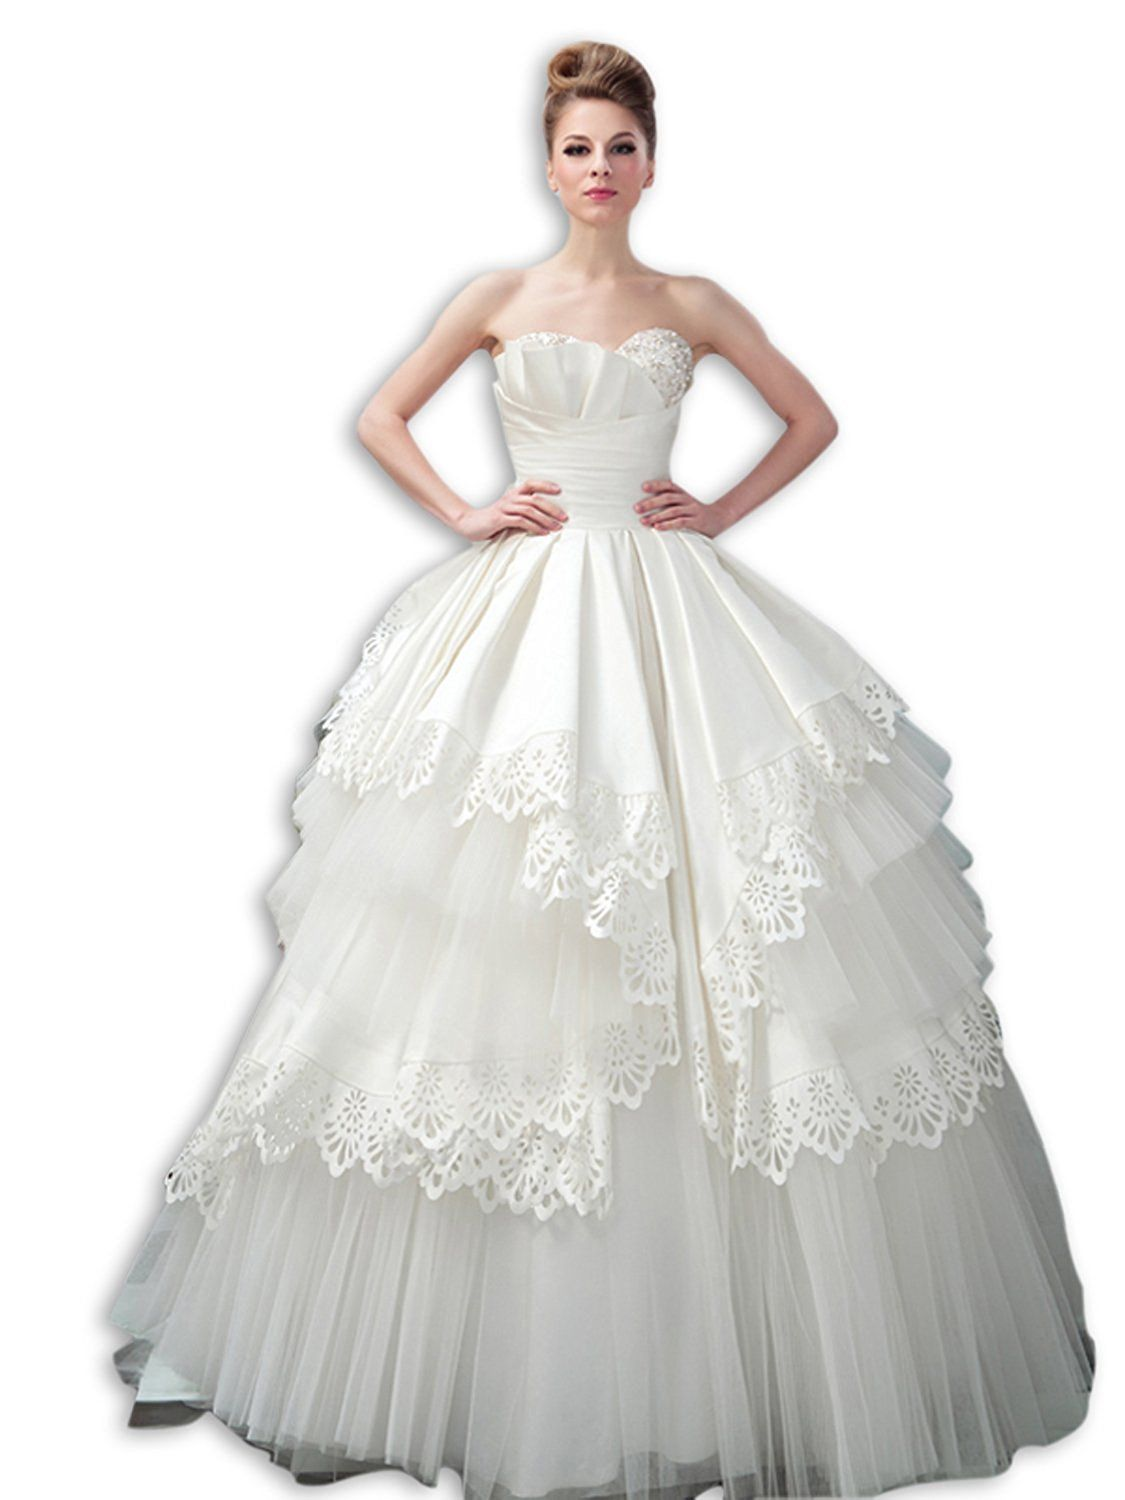 VERCART Women's Scalloped Wedding Dresses With Cut Flowers Ball Gown * Learn more by visiting the image link. (This is an affiliate link and I receive a commission for the sales)